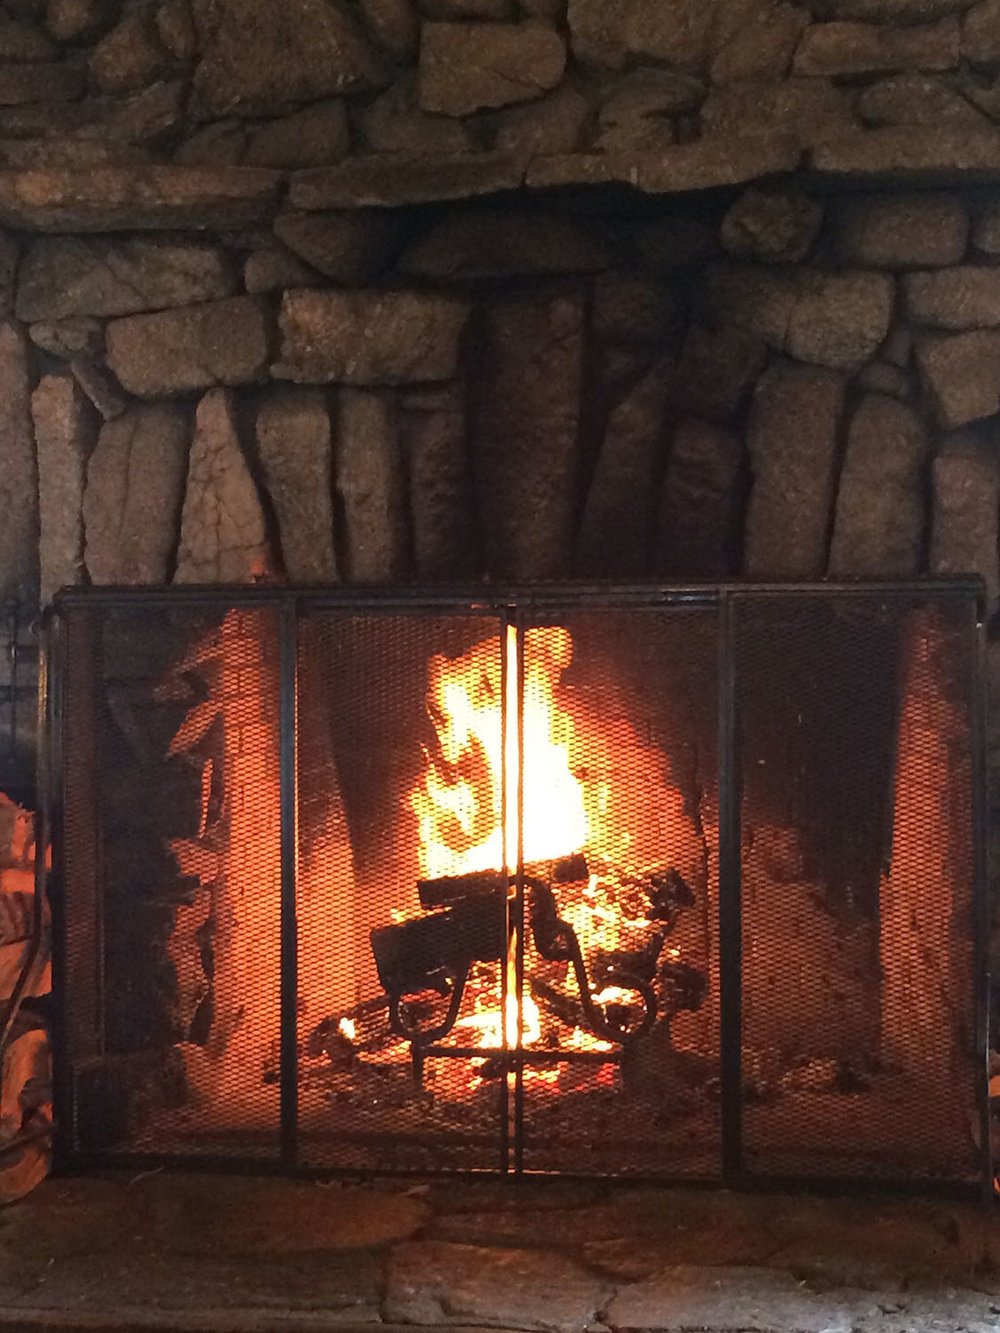 A fireplace by Julia Morgan at Asilomar.